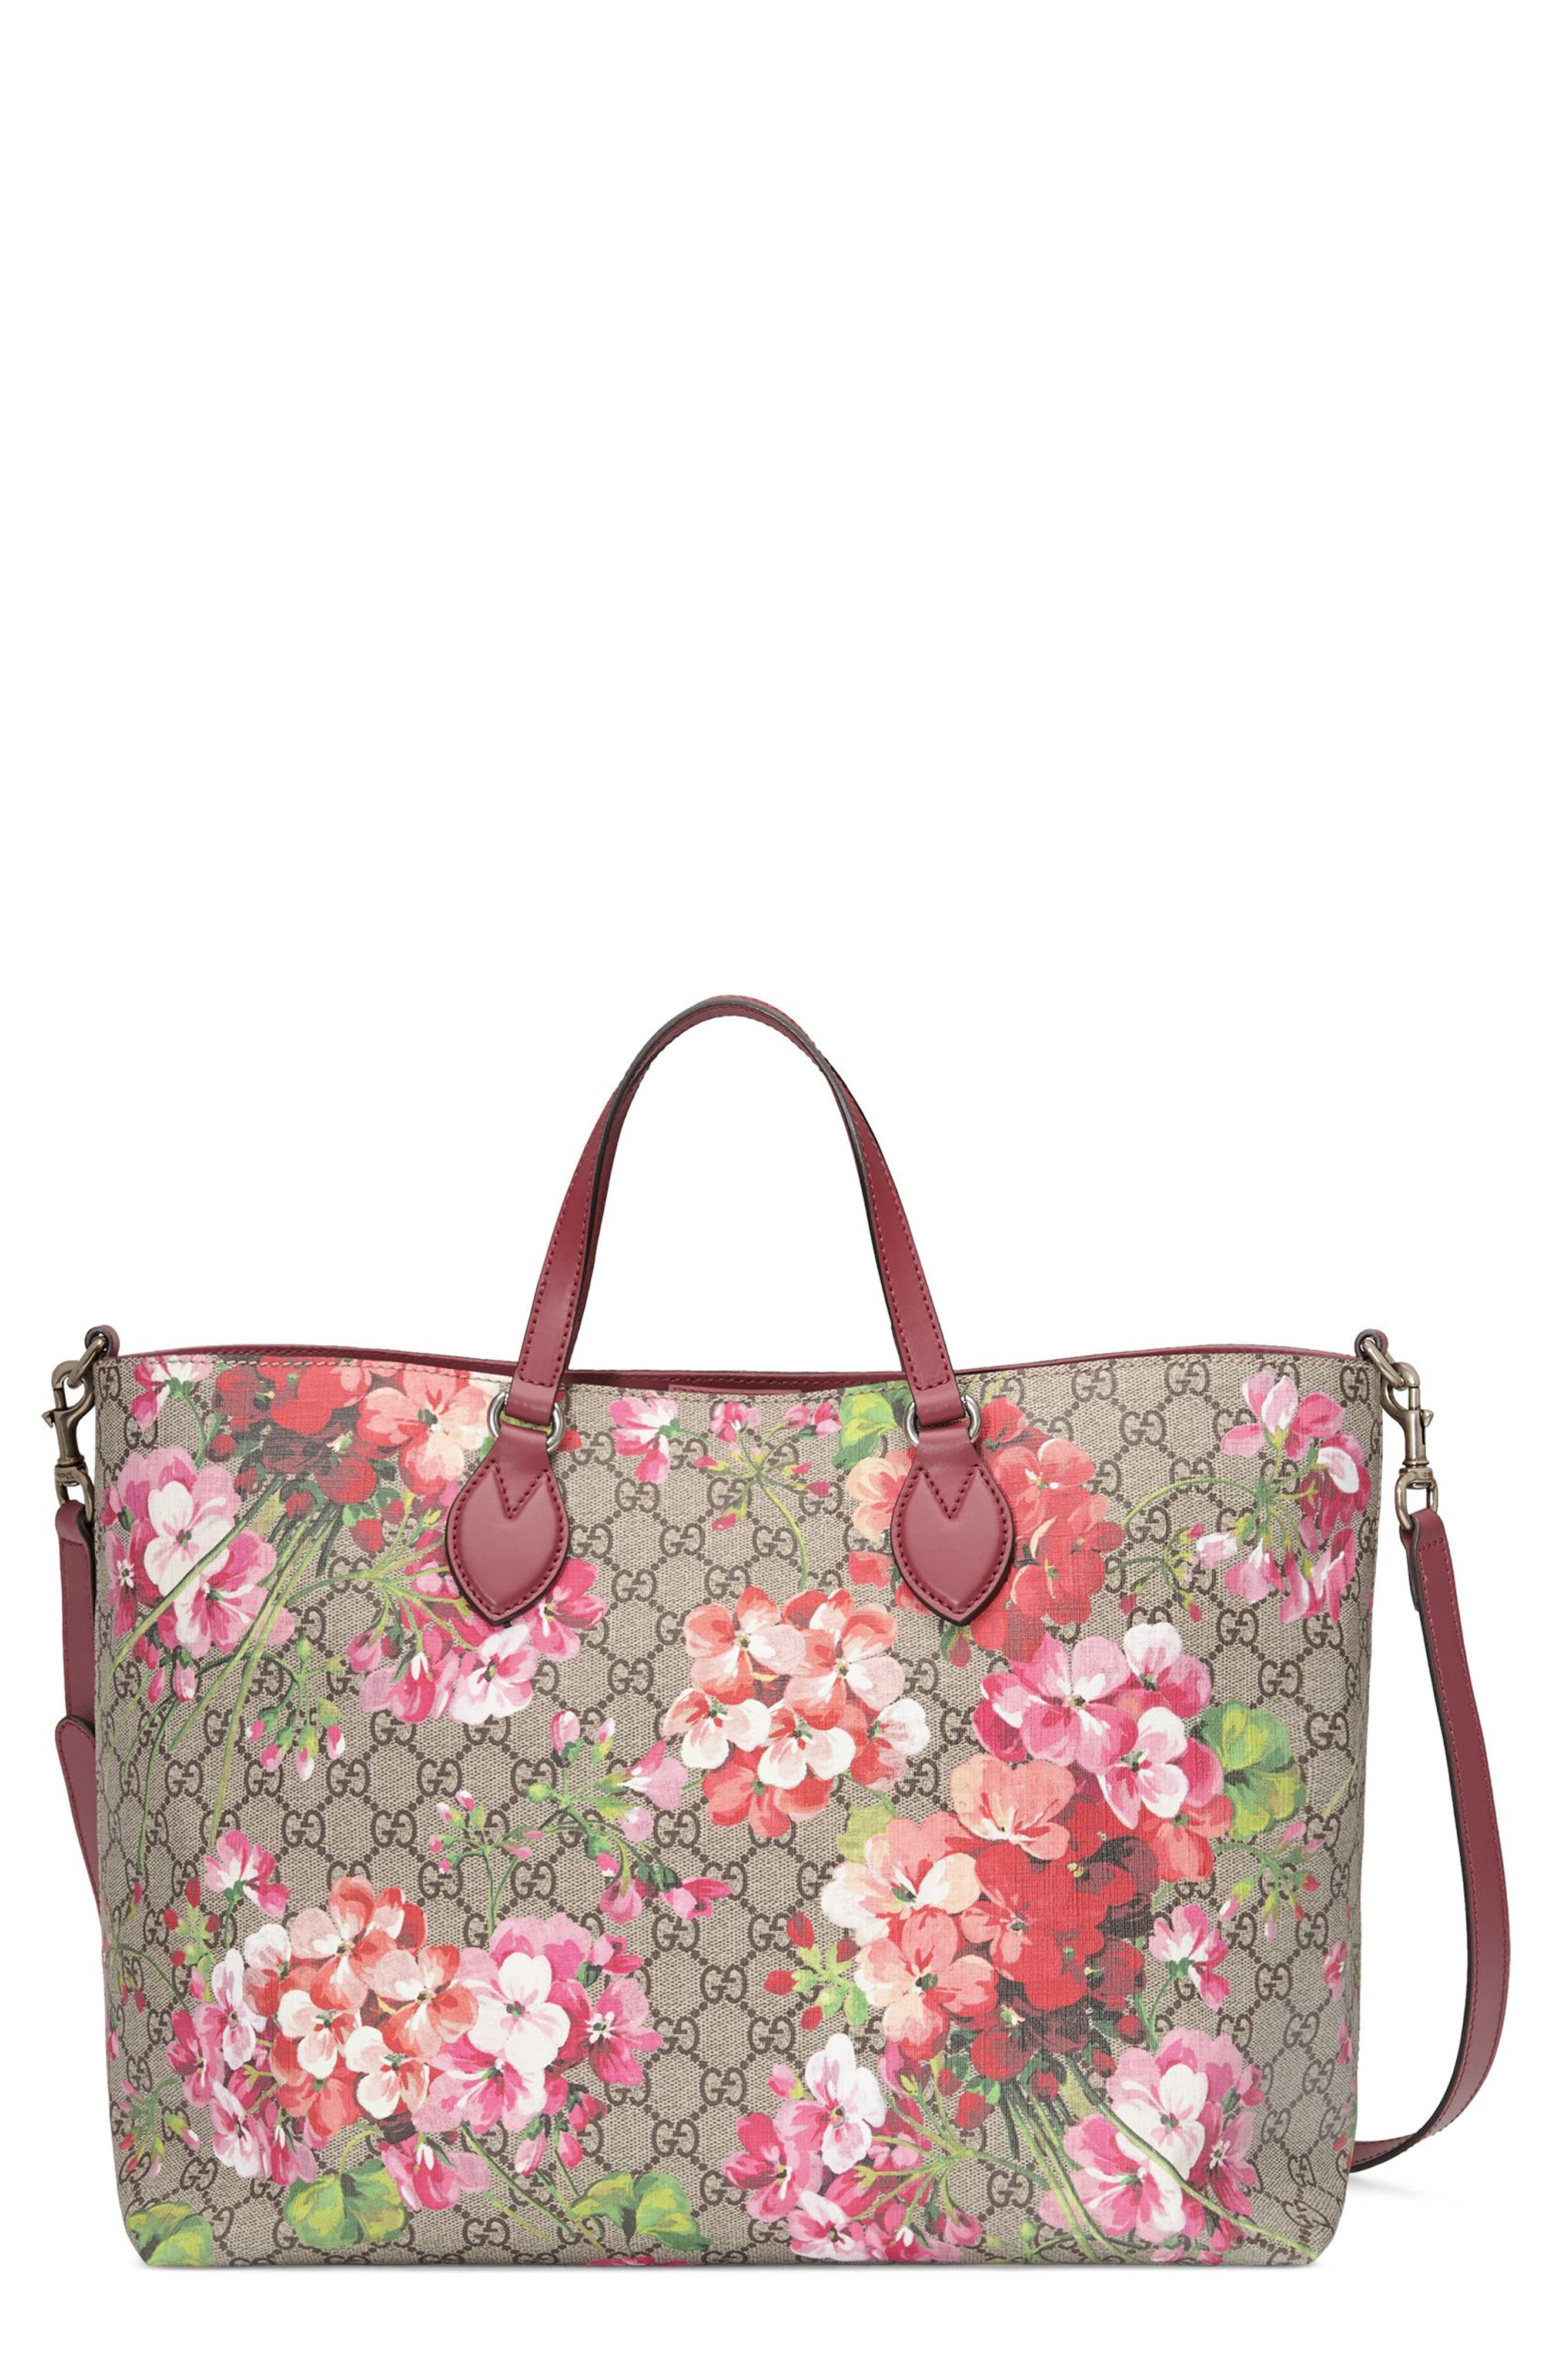 Main Image - Gucci Soft GG Blooms Tote